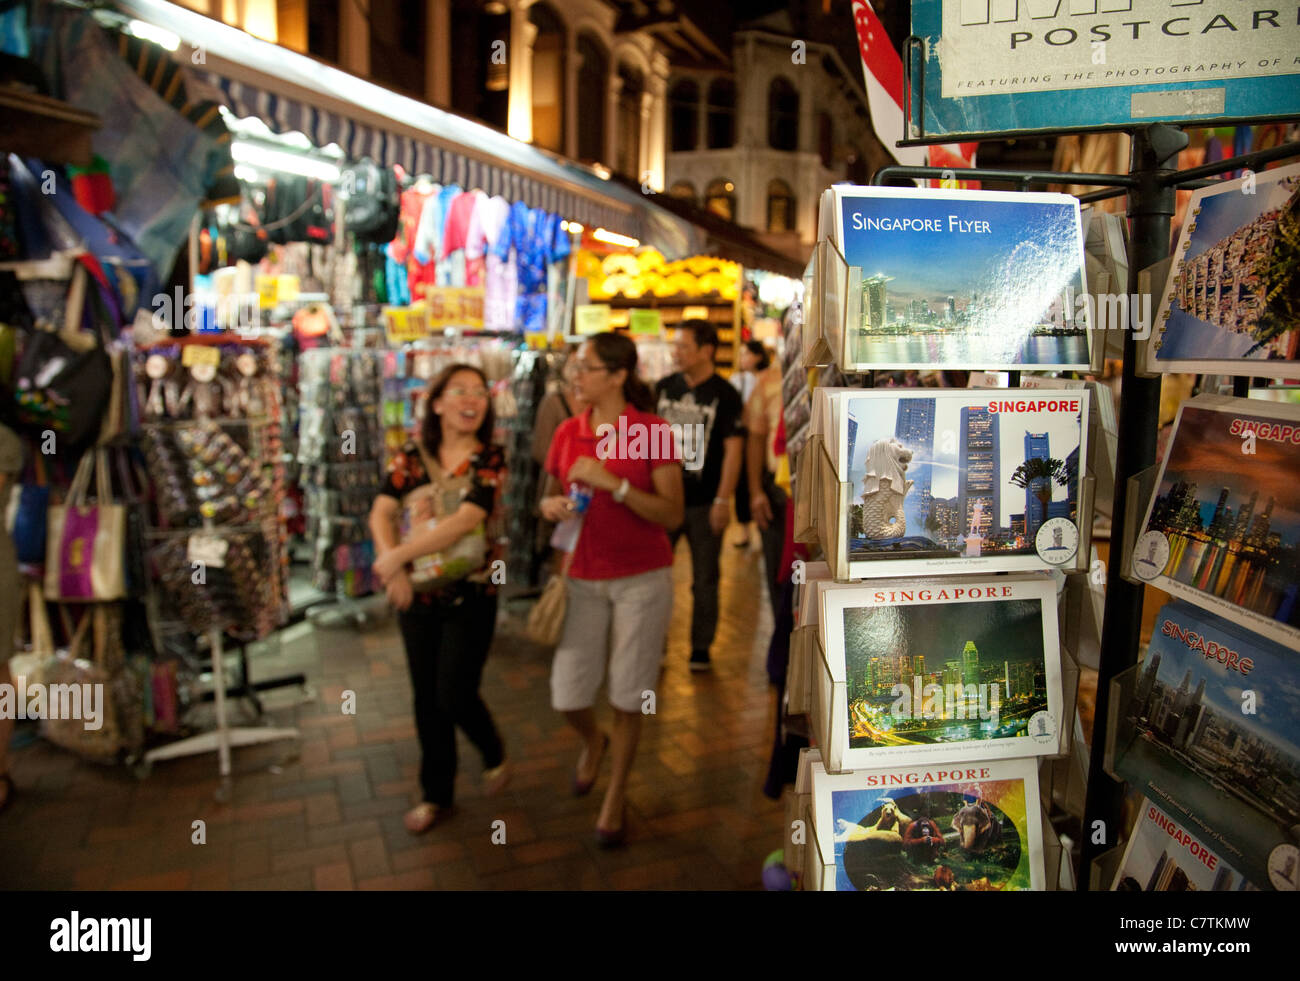 Singapore postcards on sale in Chinatown, Singapore Asia - Stock Image